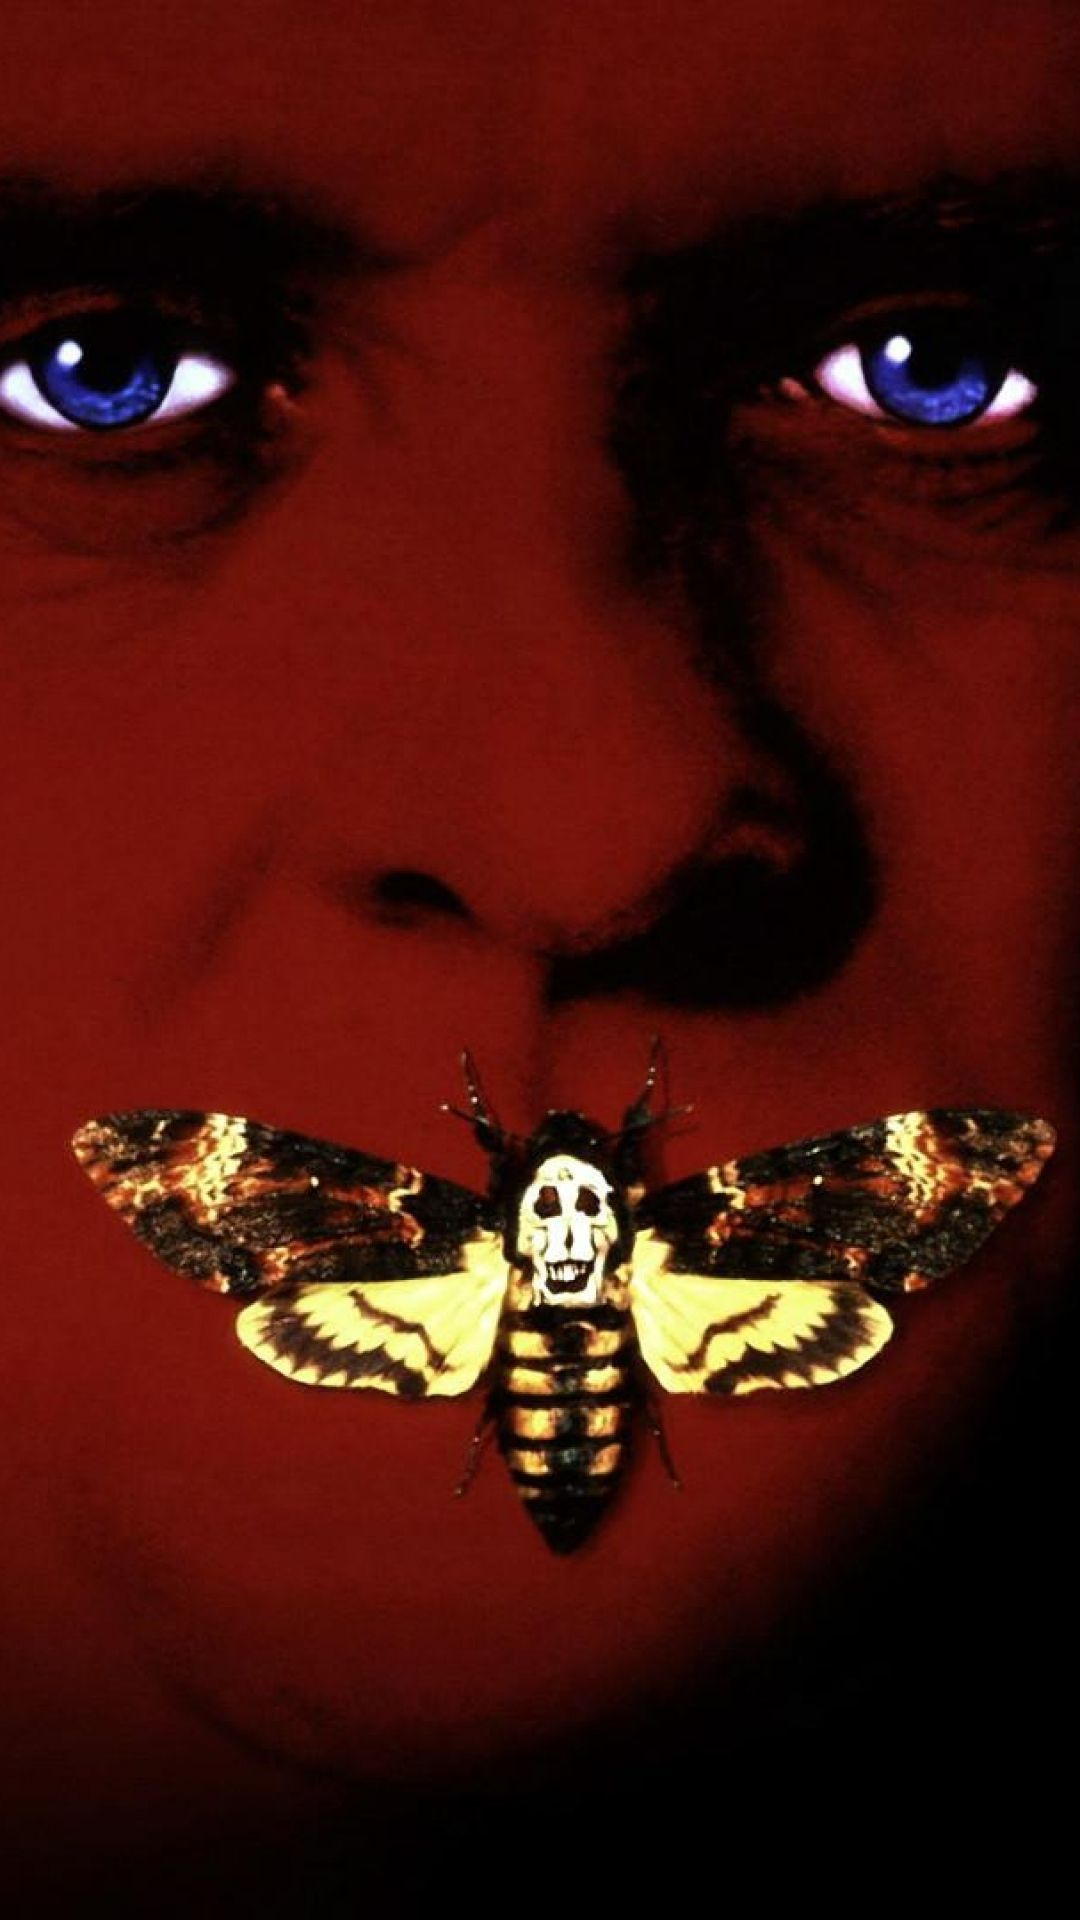 Download Wallpaper The Silence Of The Lambs Butterflies Movie